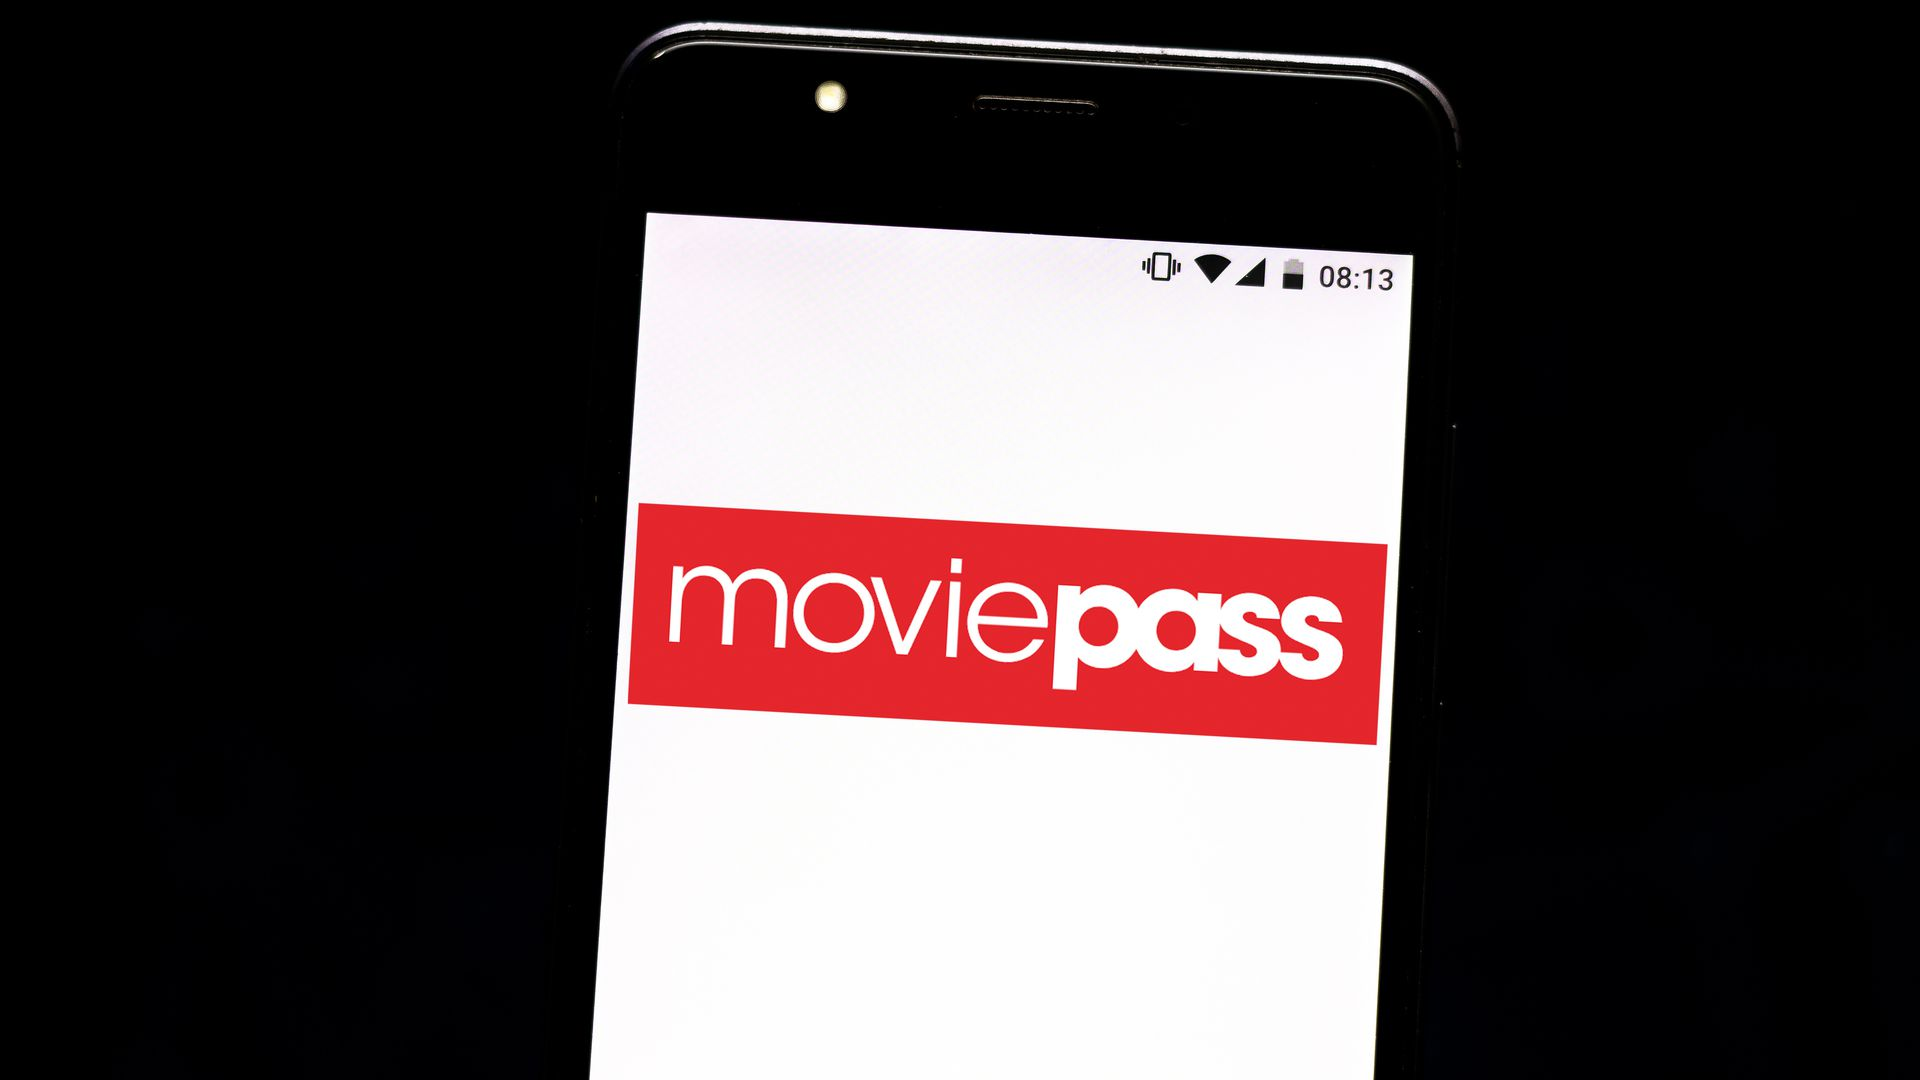 This image shows a phone with the Moviepass logo on it.